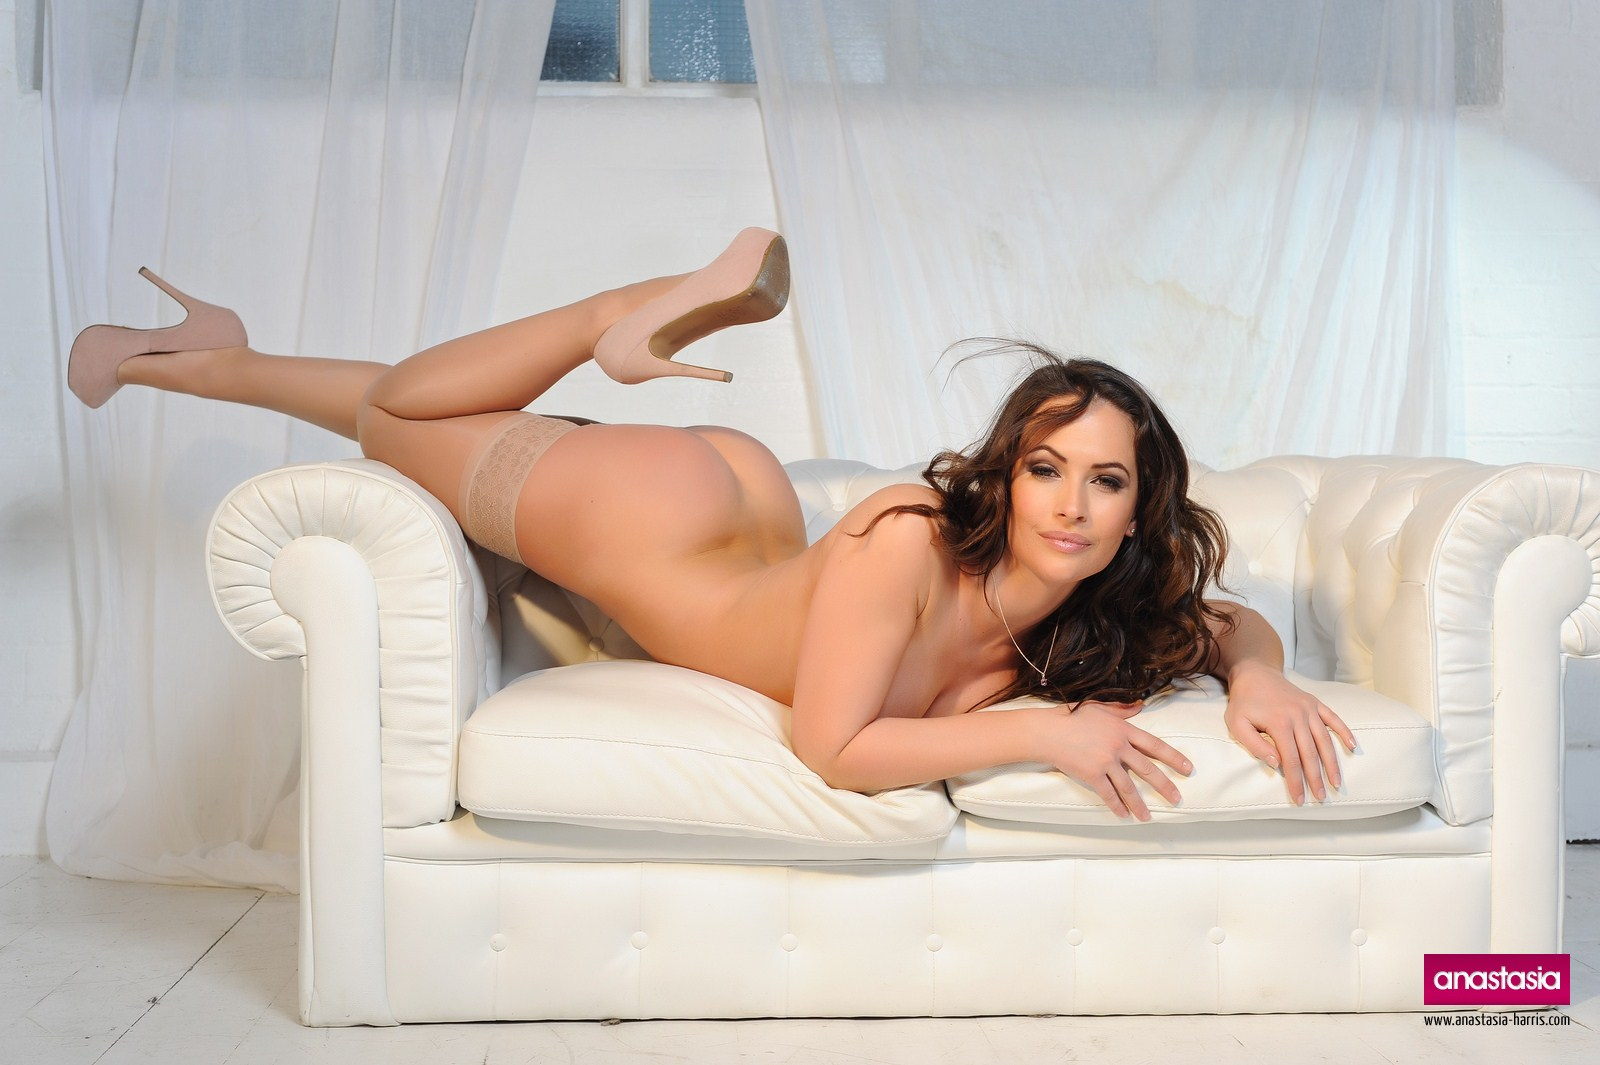 want Annabelle angel dildo need sweetheart. Confident, knowledgeable